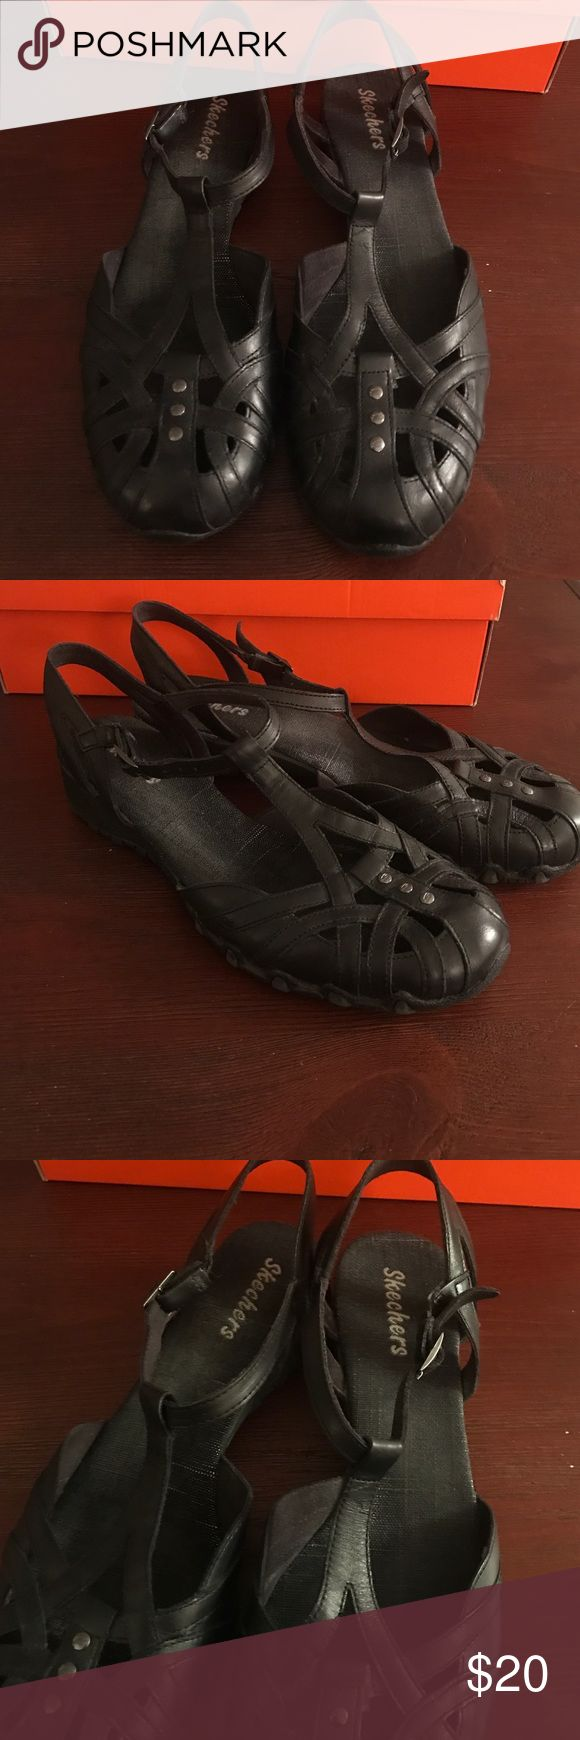 Black Skechers Sandals Excellent condition size 10 black leather sandals in very good condition. Insoles show a little wear but outer is in excellent condition. Skechers Shoes Sandals